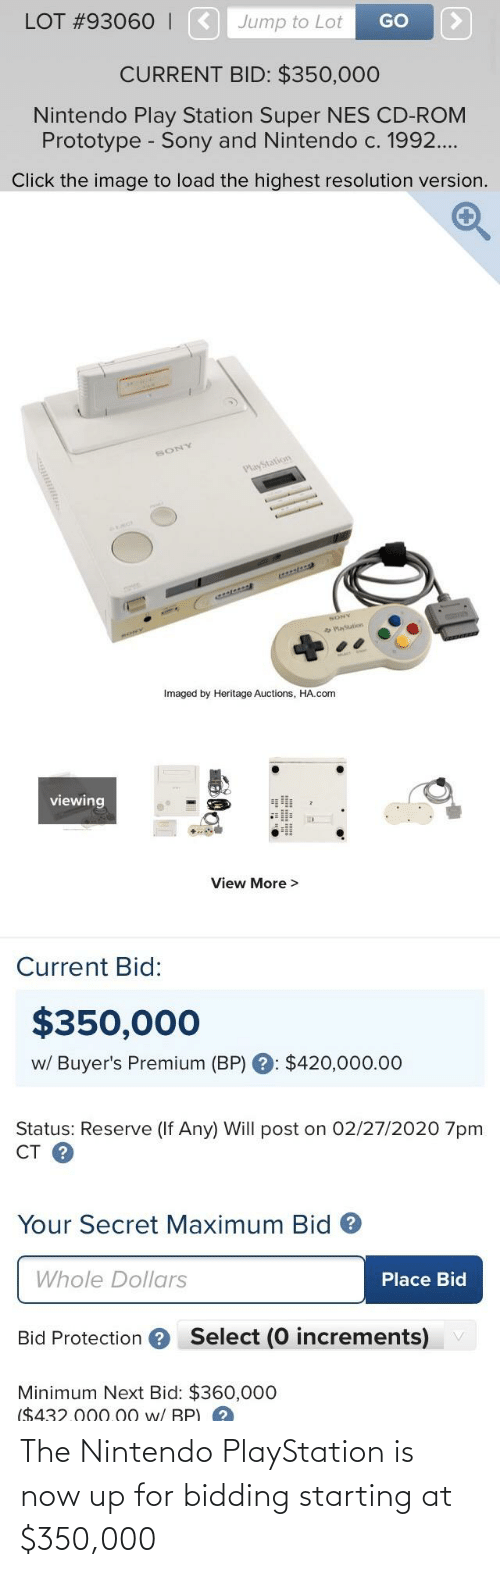 Nintendo: The Nintendo PlayStation is now up for bidding starting at $350,000